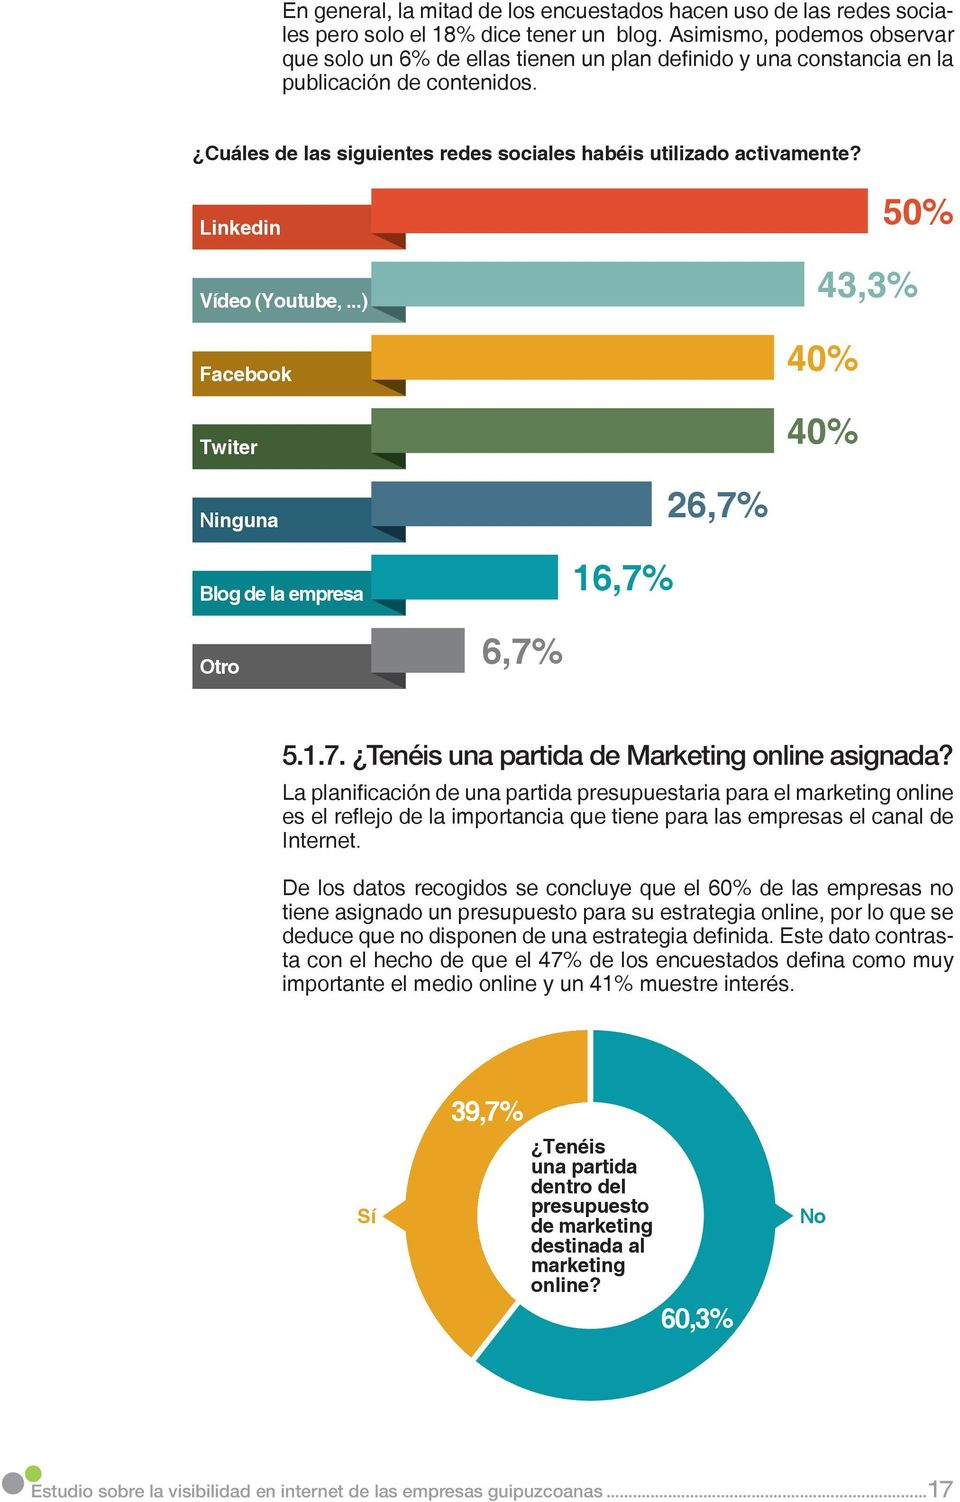 Linkedin Vídeo (Youtube,...) Facebook Twiter 50% 43,3% 40% 40% Ninguna Blog de la empresa 16,7% 26,7% Otro 6,7% 5.1.7. Tenéis una partida de Marketing online asignada?